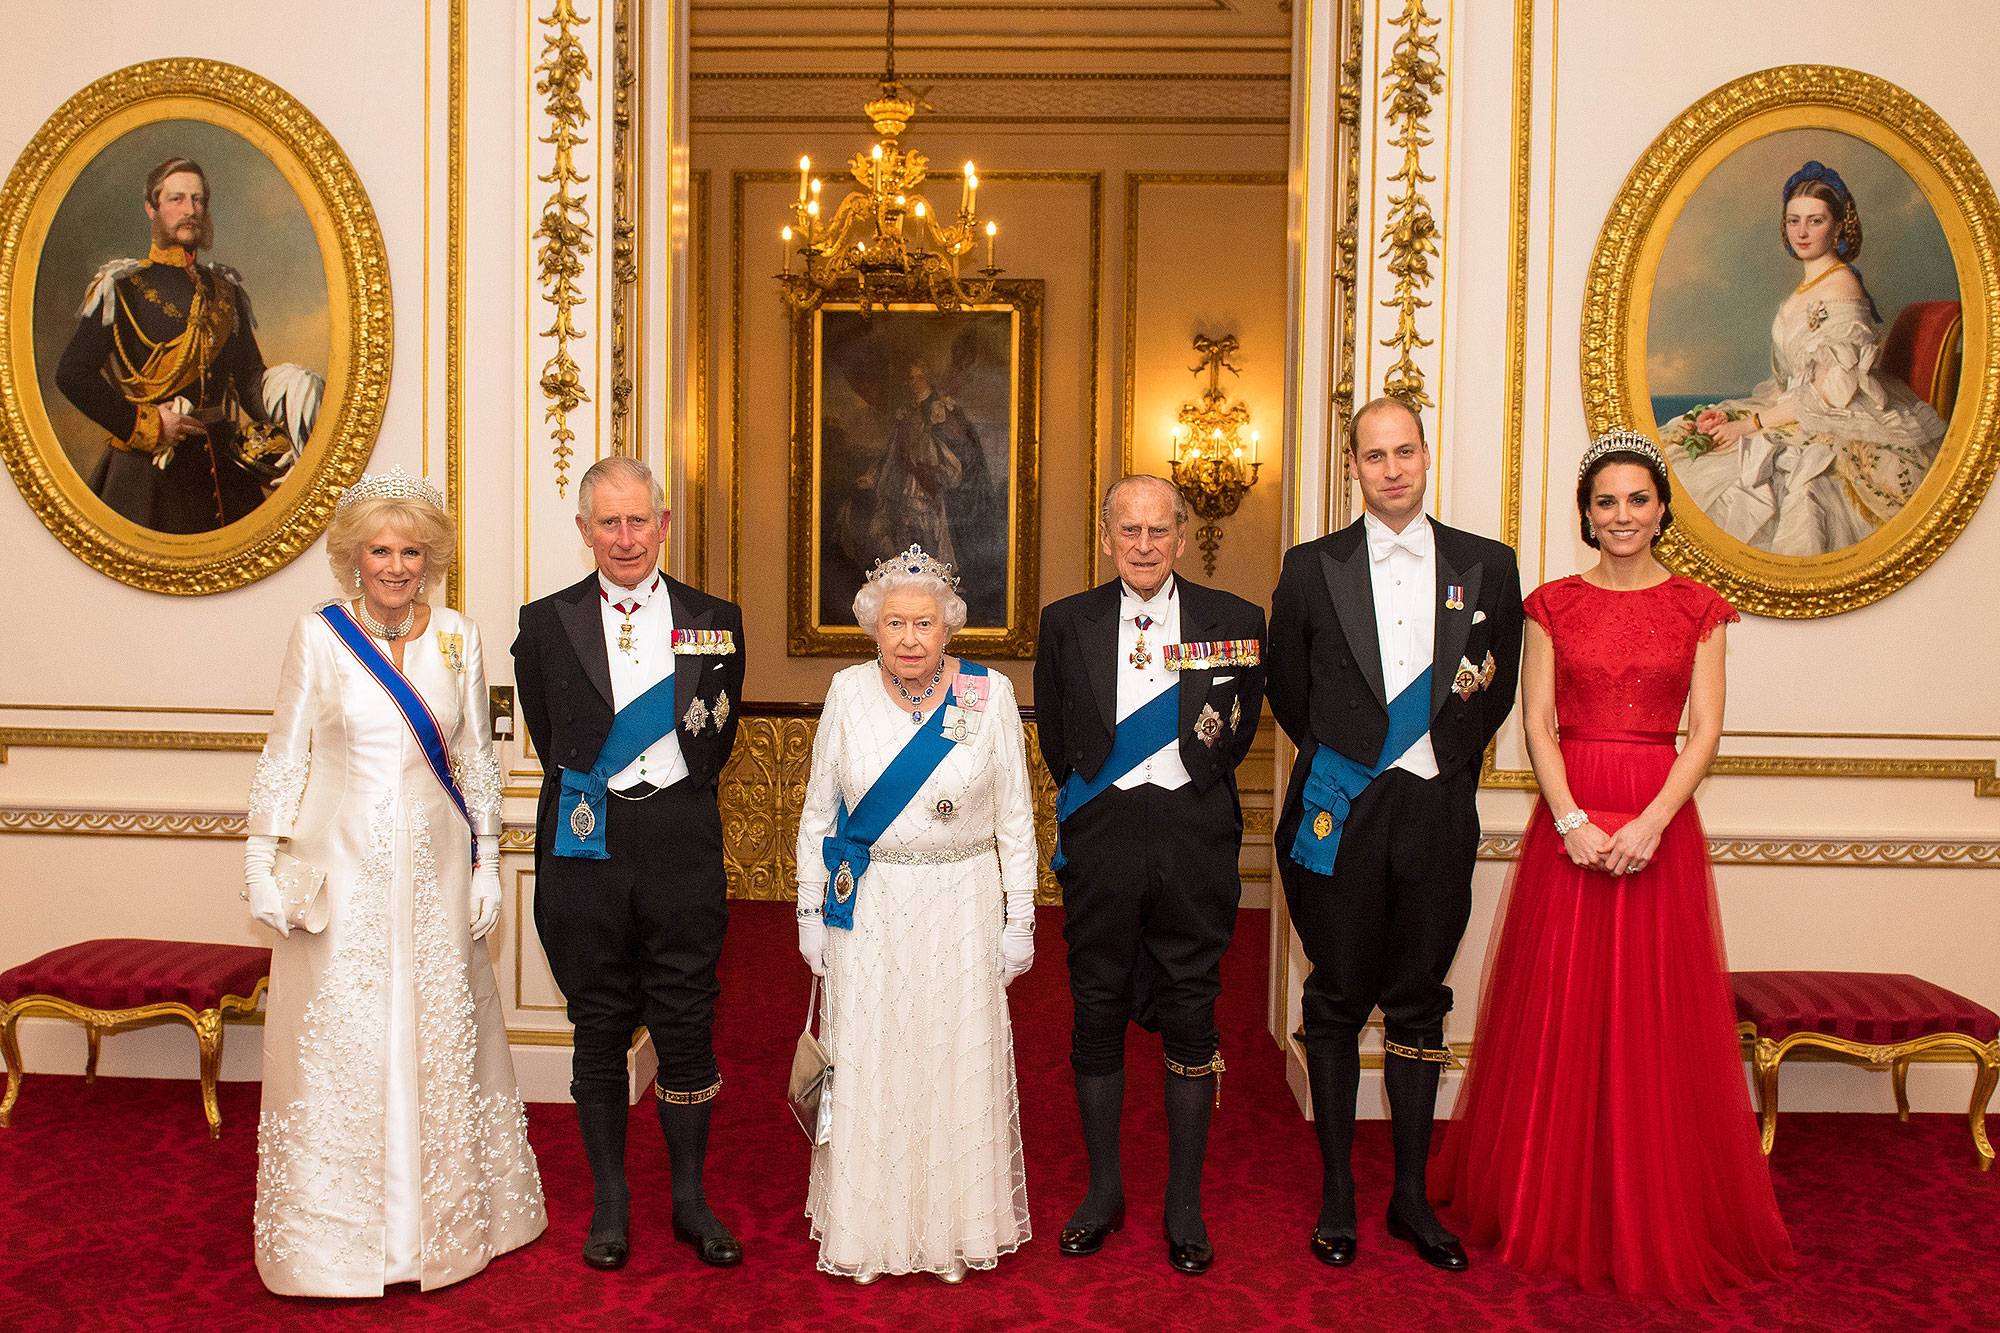 The Queen, The Duke of Edinburgh, The Prince of Wales, The Duchess of Cornwall and The Duke and Duchess of Cambridge attend the Queen's Diplomatic Reception at Buckingham Palace, London, UK, on the 8th December 2016. Picture by Dominic Lipinski/WPA-Pool. 08 Dec 2016 Pictured: Camilla, Duchess of Cornwall, Prince Charles, Prince of Wales, Queen, Queen Elizabeth, Prince Philip, Duke of Edinburgh, Prince William, Duke of Cambridge, Catherine, Duchess of Cambridge, Kate Middleton.